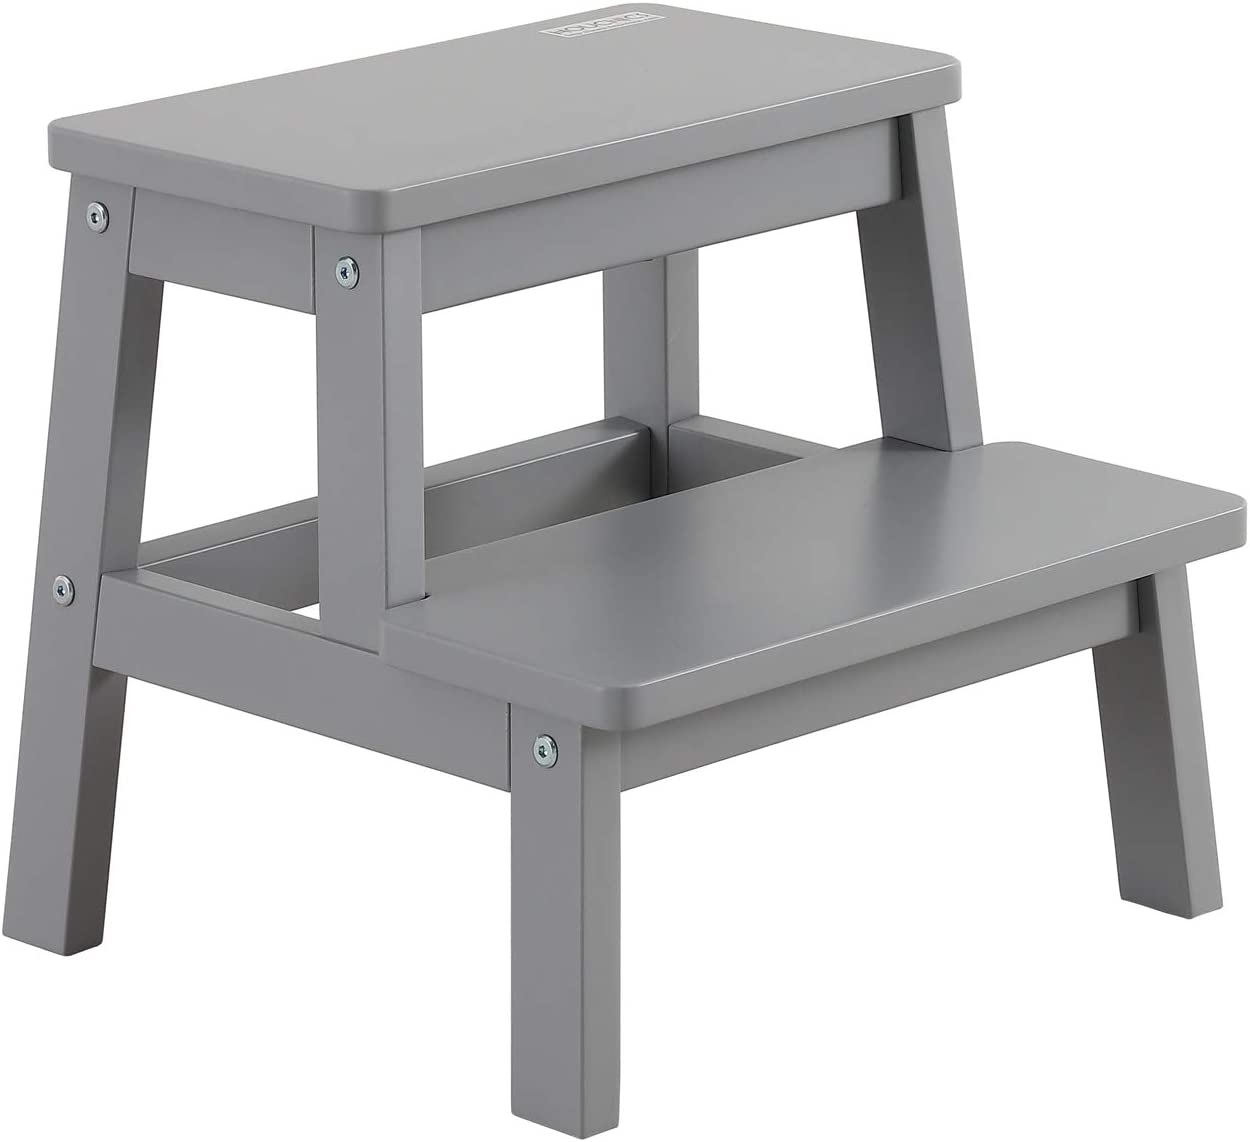 HOUCHICS Solid Wooden Step Stool for Kids , Toddlers Step Stool for Kitchen,Bathroom ,Bedroom,Living Room with Non-Slip Mats and 260lb Load Capacity(Gray)